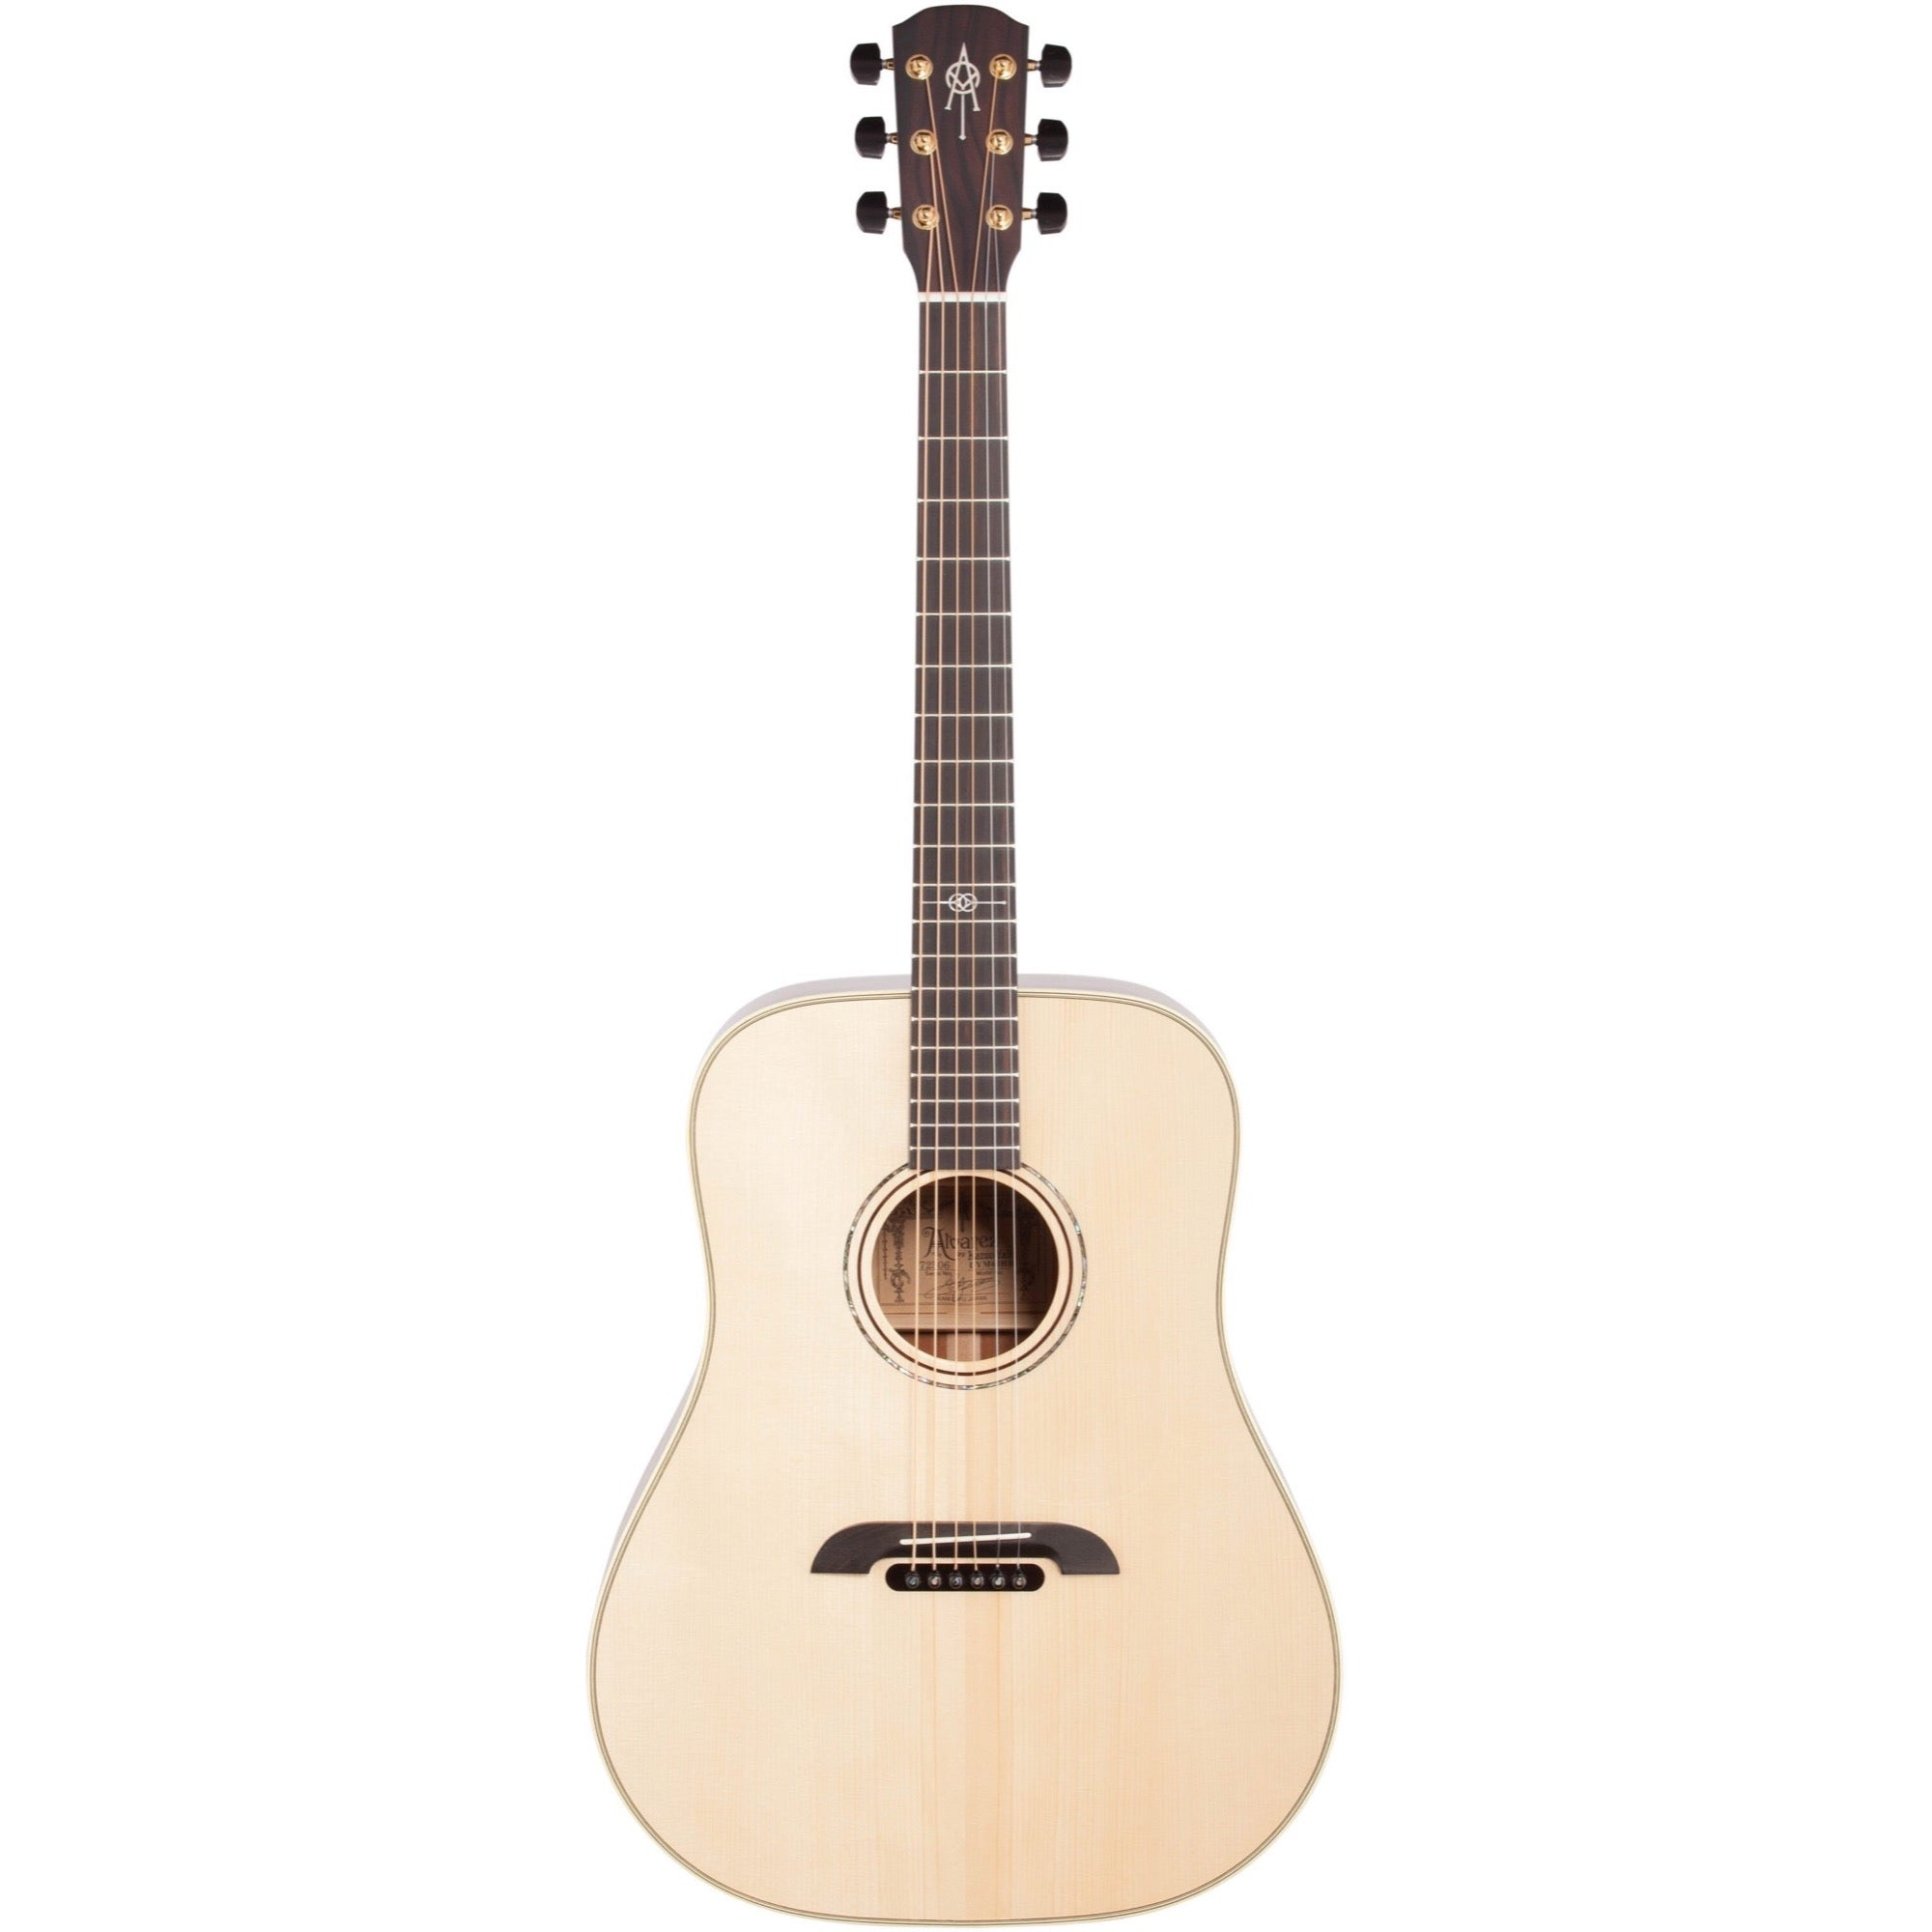 Alvarez Yairi DYM60HD Masterworks Acoustic Guitar (with Case)